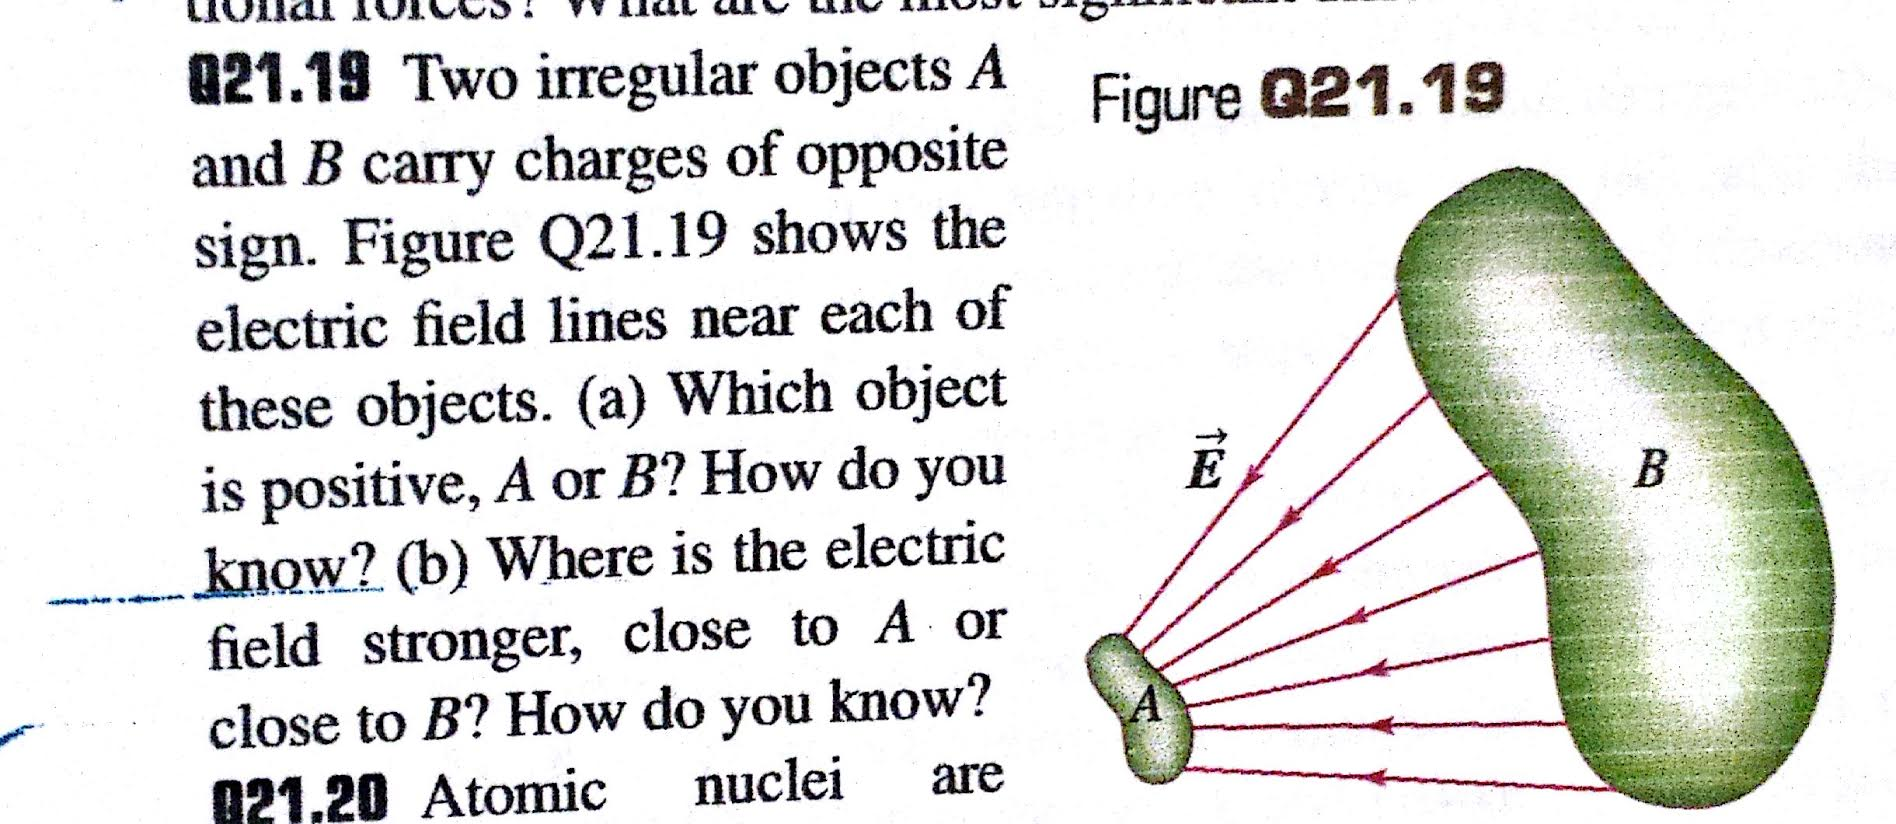 Worksheet Opposite Objects q21 19 two irregular objects a and b carry charges chegg com image for of opposite sign